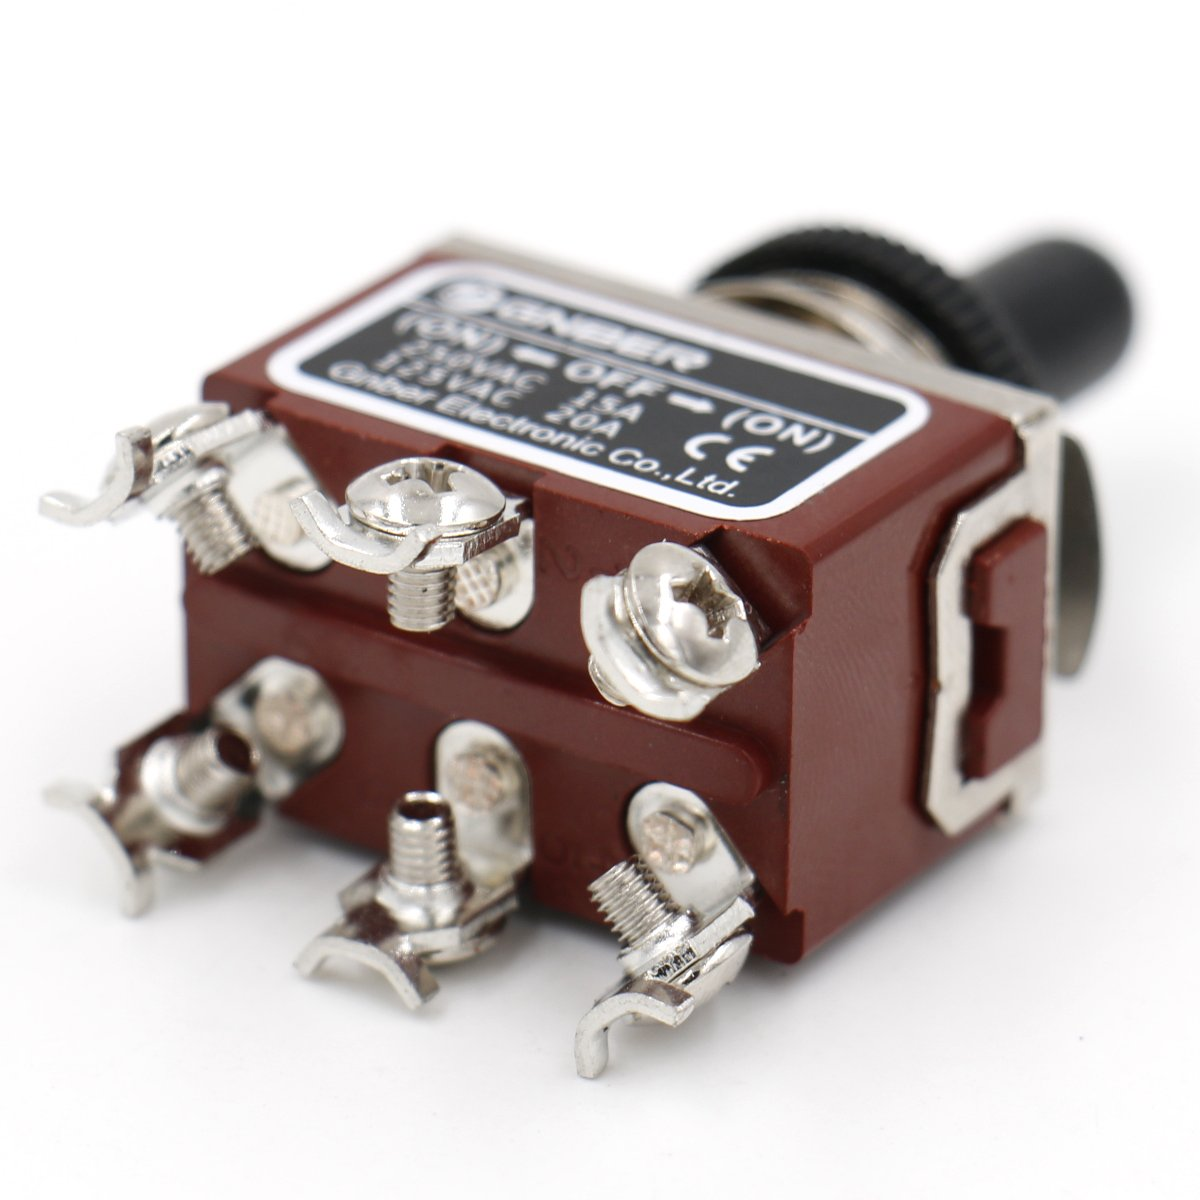 Heschen metal toggle switch DPDT Momentary //OFF// ON 3 position 15A 250VAC with waterproof cover CE ON